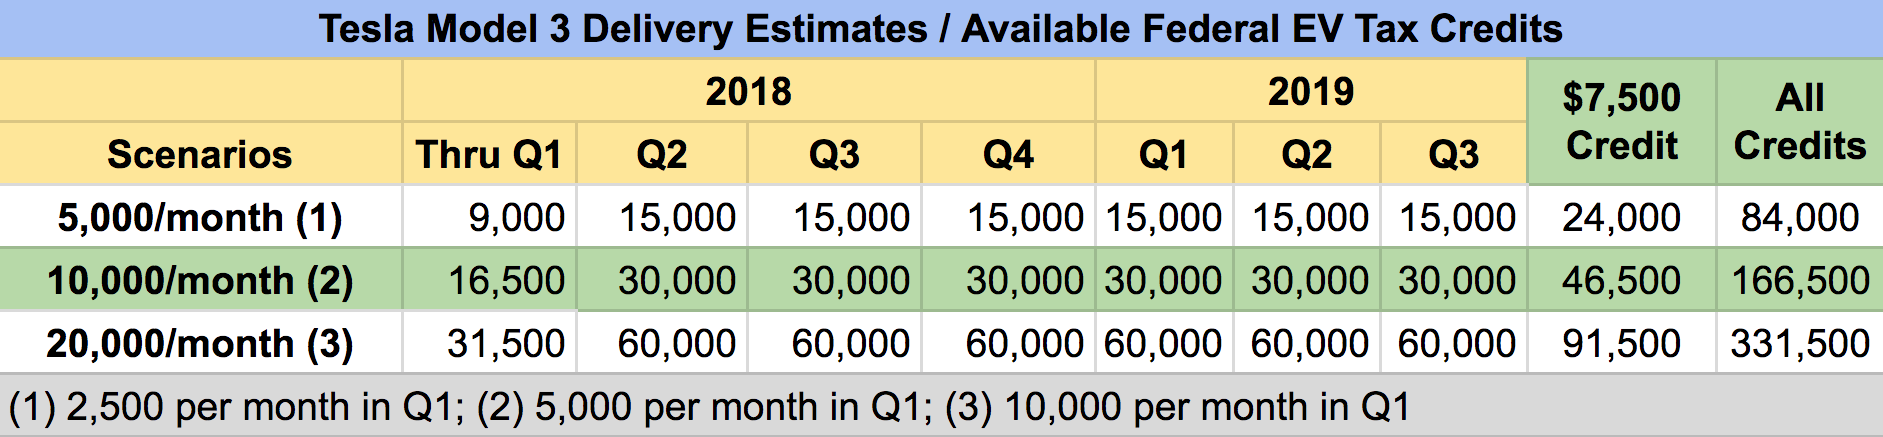 Uming That Tesla Reaches 200 000 In Us S Q2 Of 2018 The Full 7 500 Would Be Available Through Q3 And End Completely At 2019